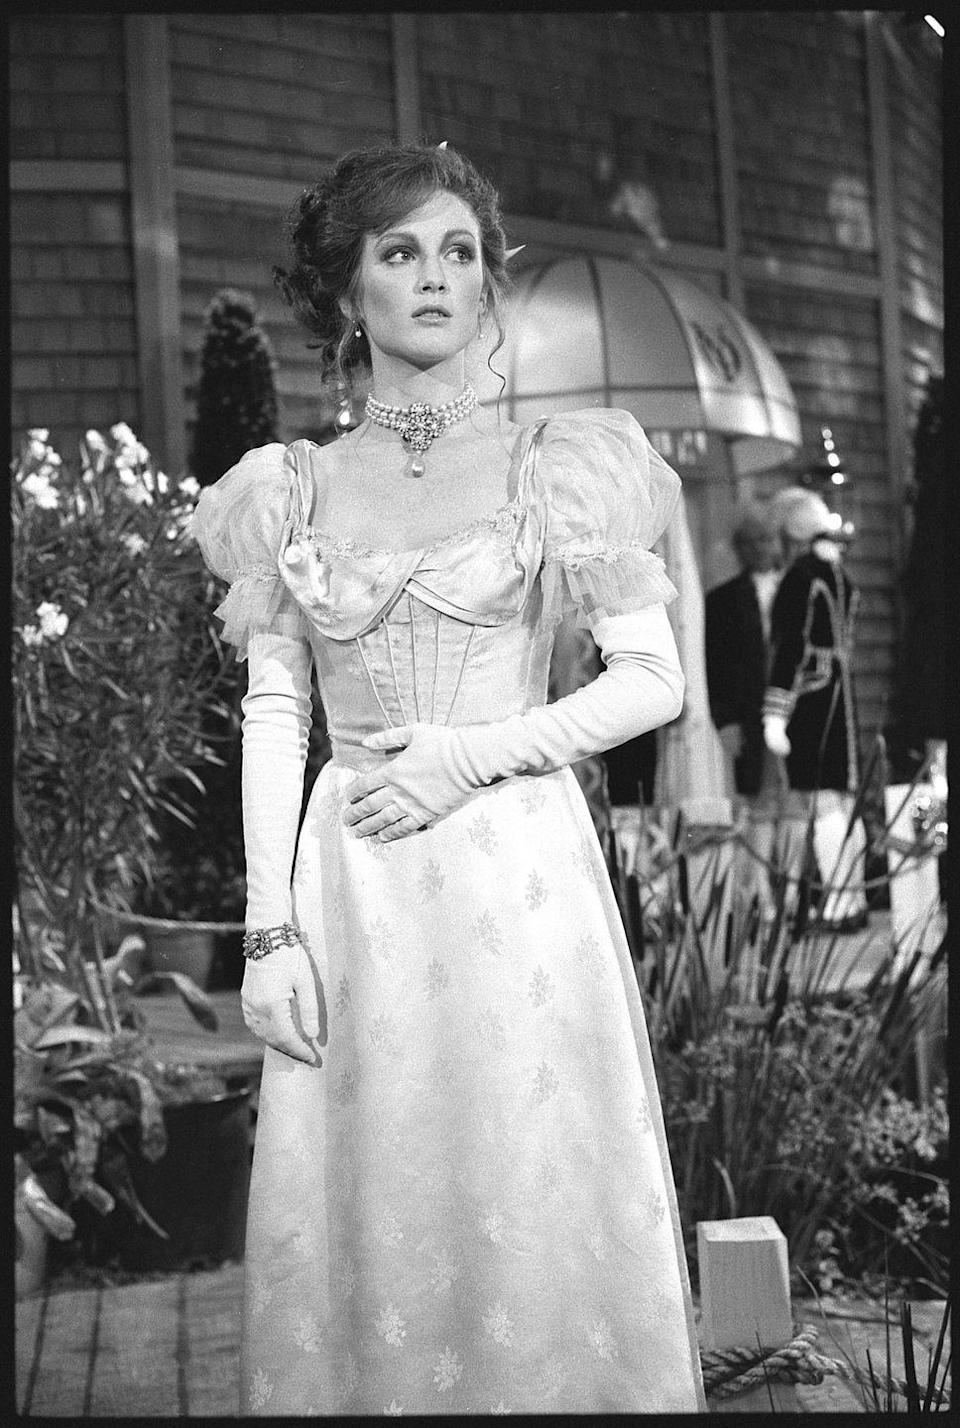 <p>The Oscar winner stole the screen in <em>As the World Turns </em>in 1985. Check out that costume! </p>